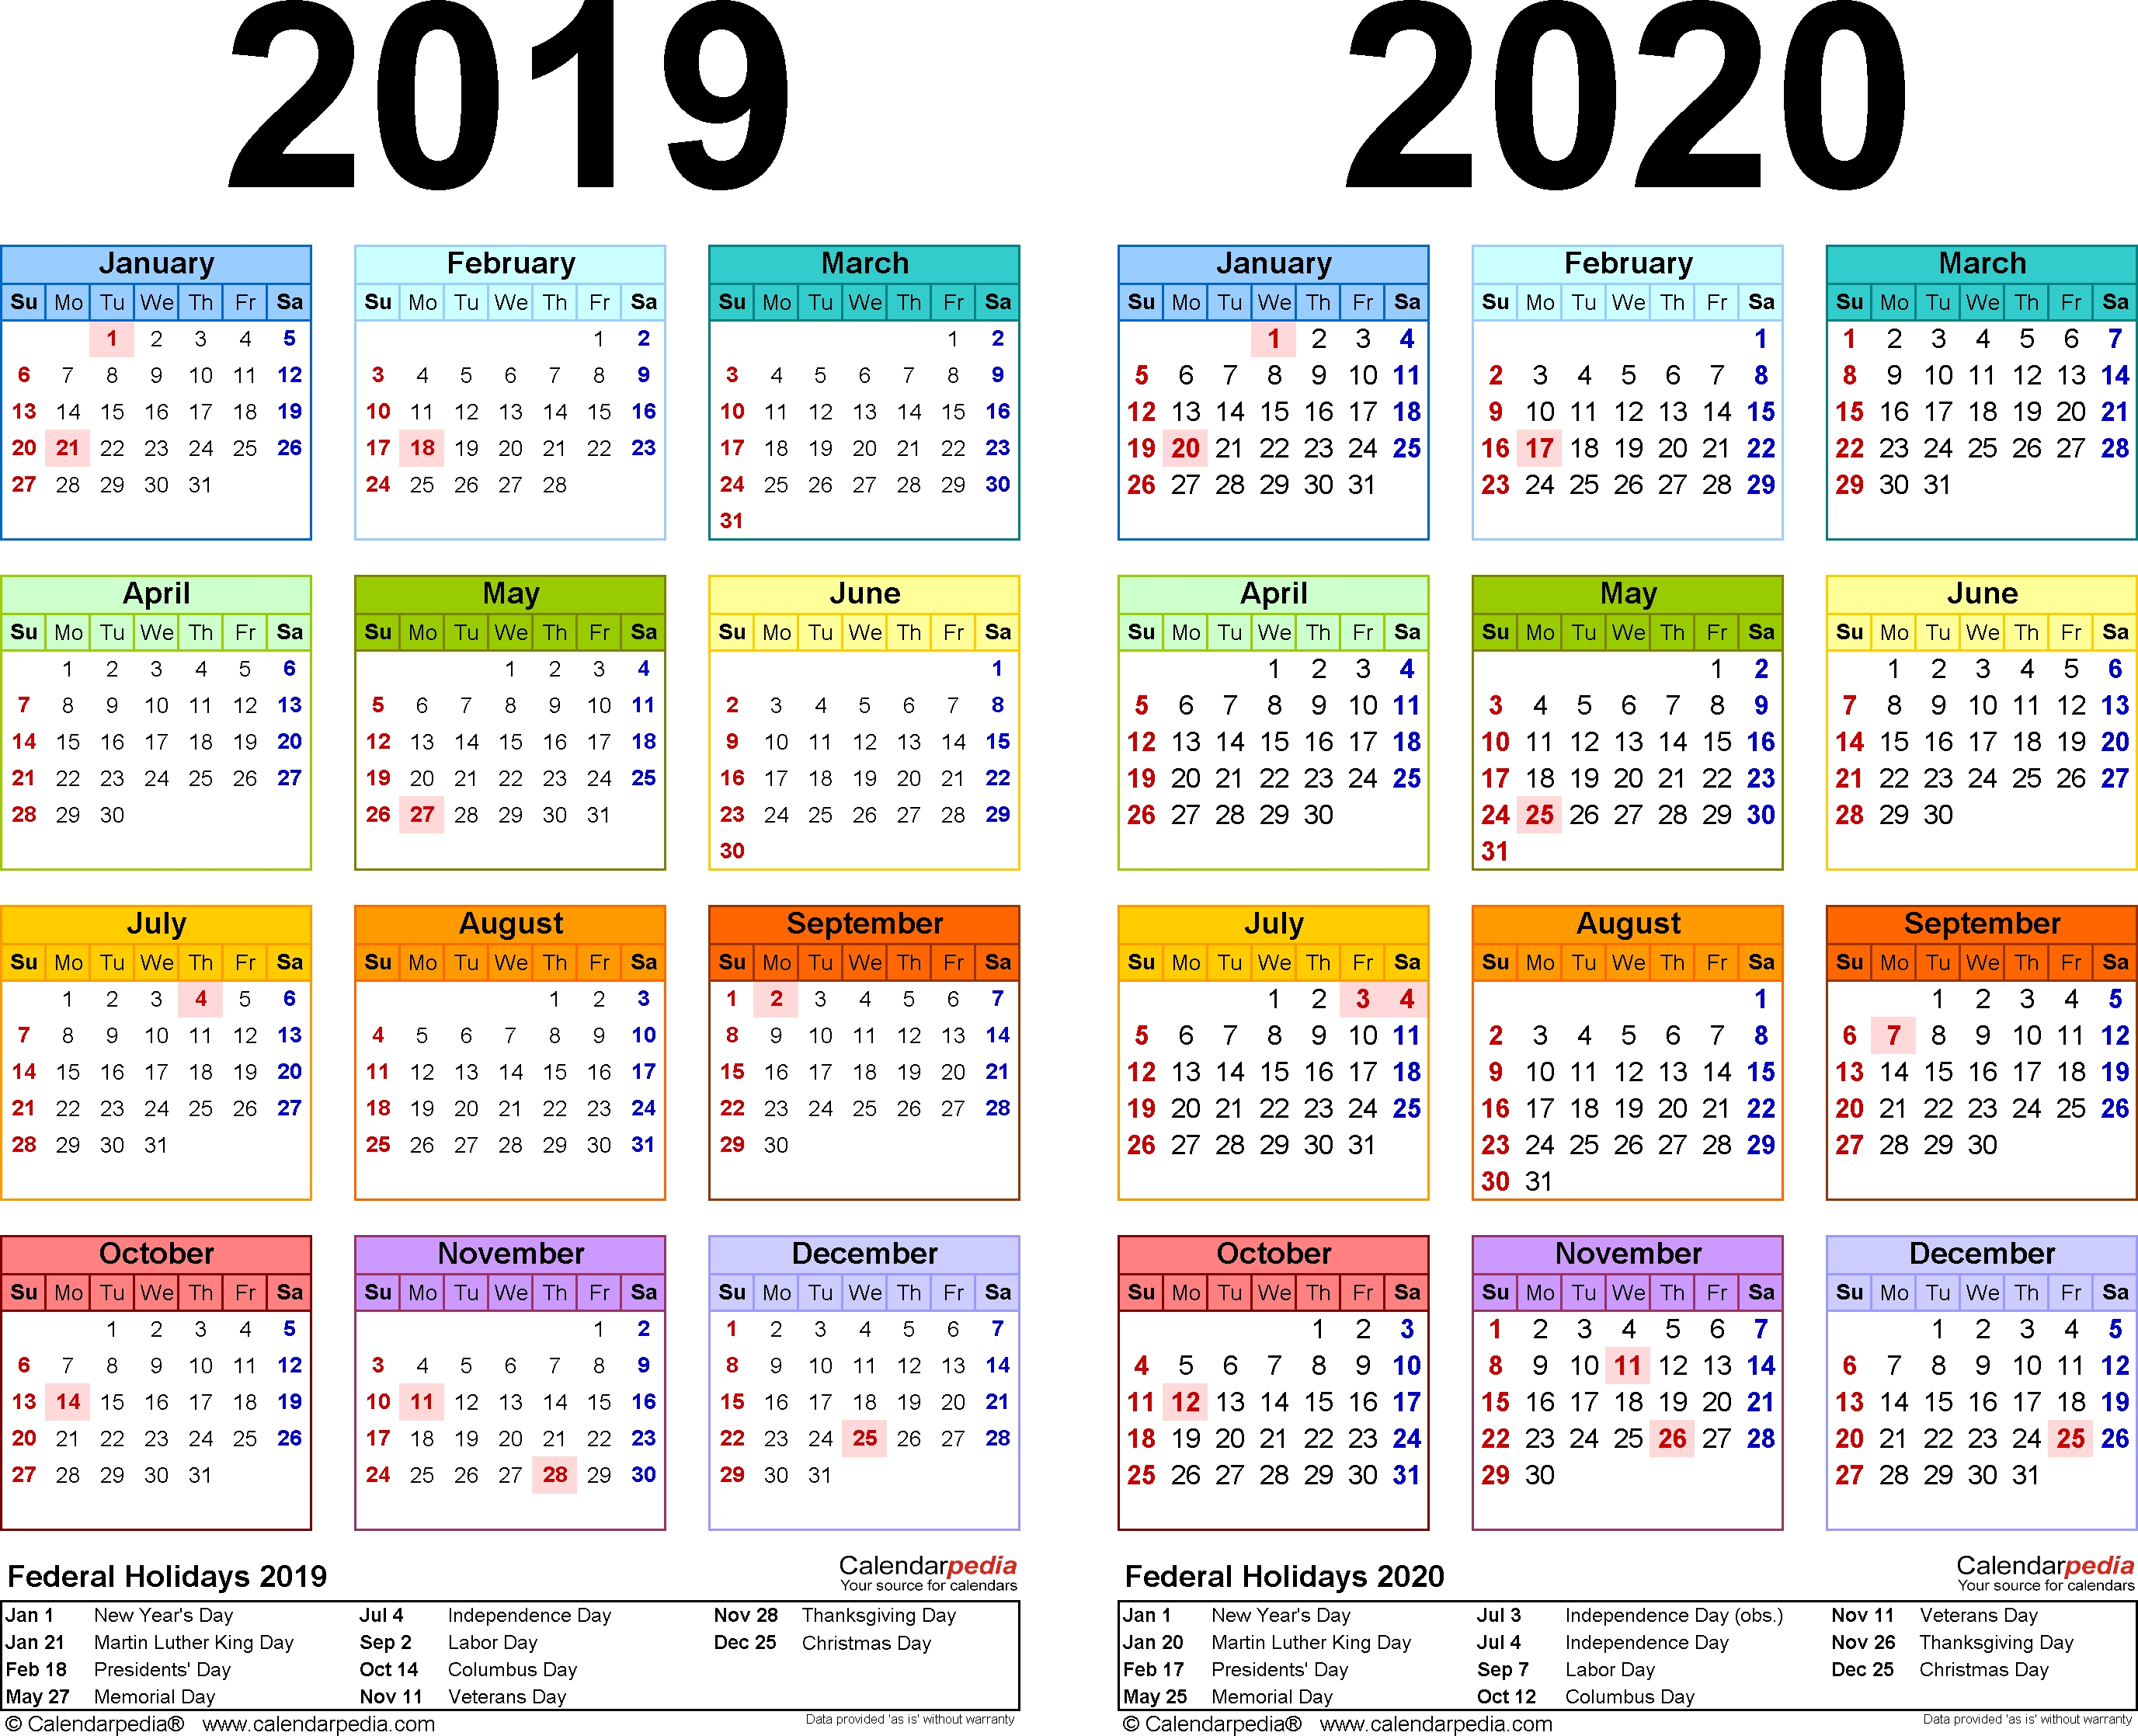 2019-2020 Calendar - Free Printable Two-Year Pdf Calendars for Calendar 365 2020 Printable